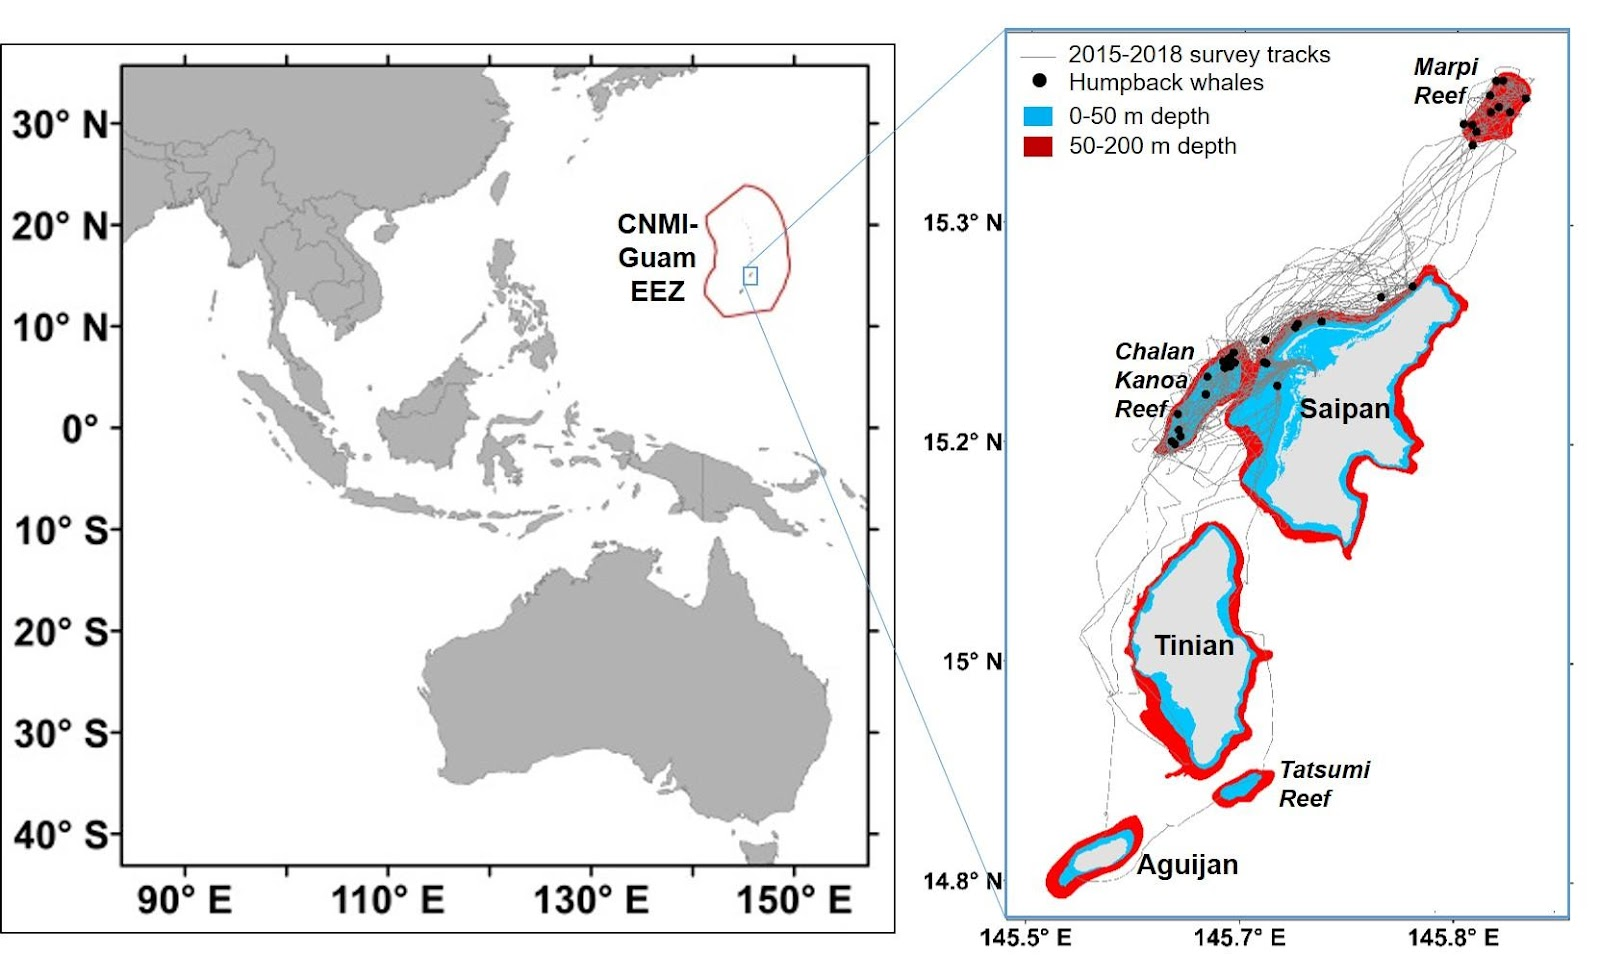 Map images of the Saipan, Tinian, and Aguijan island areas where small-boat surveys for humpback whales are conducted.